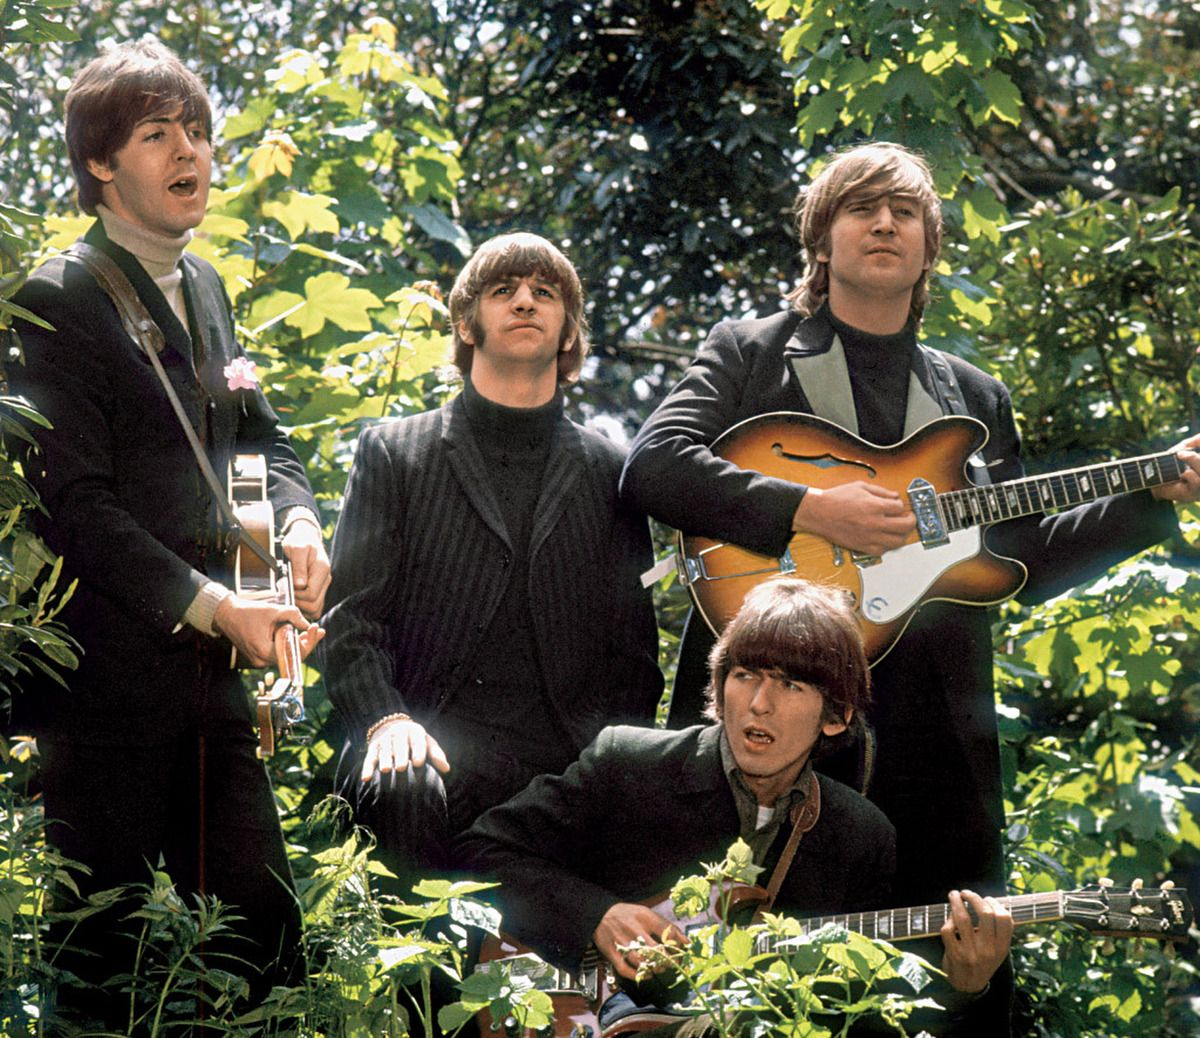 the beatles - Google Search